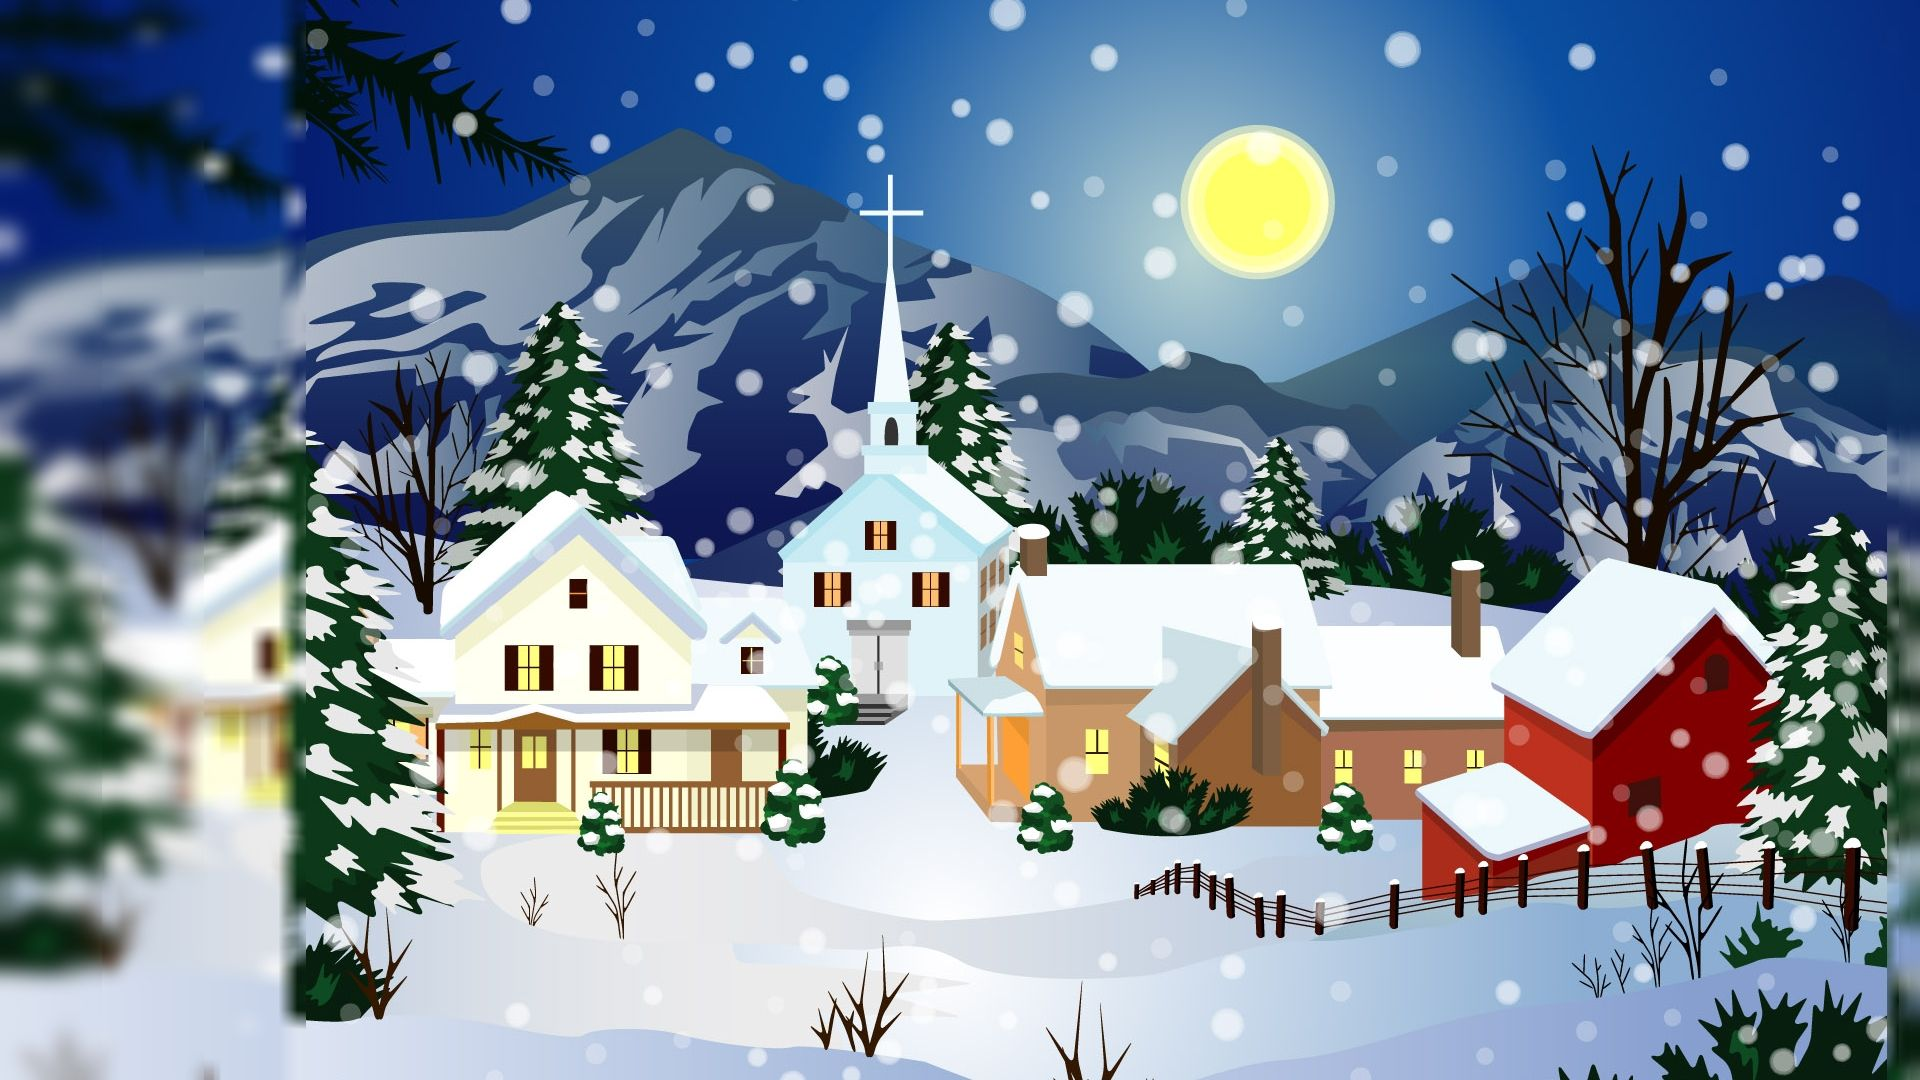 Merry Christmas Relieve Me Of The Curse Of Memory Animated Christmas Wallpaper Animated Christmas Christmas Desktop Wallpaper